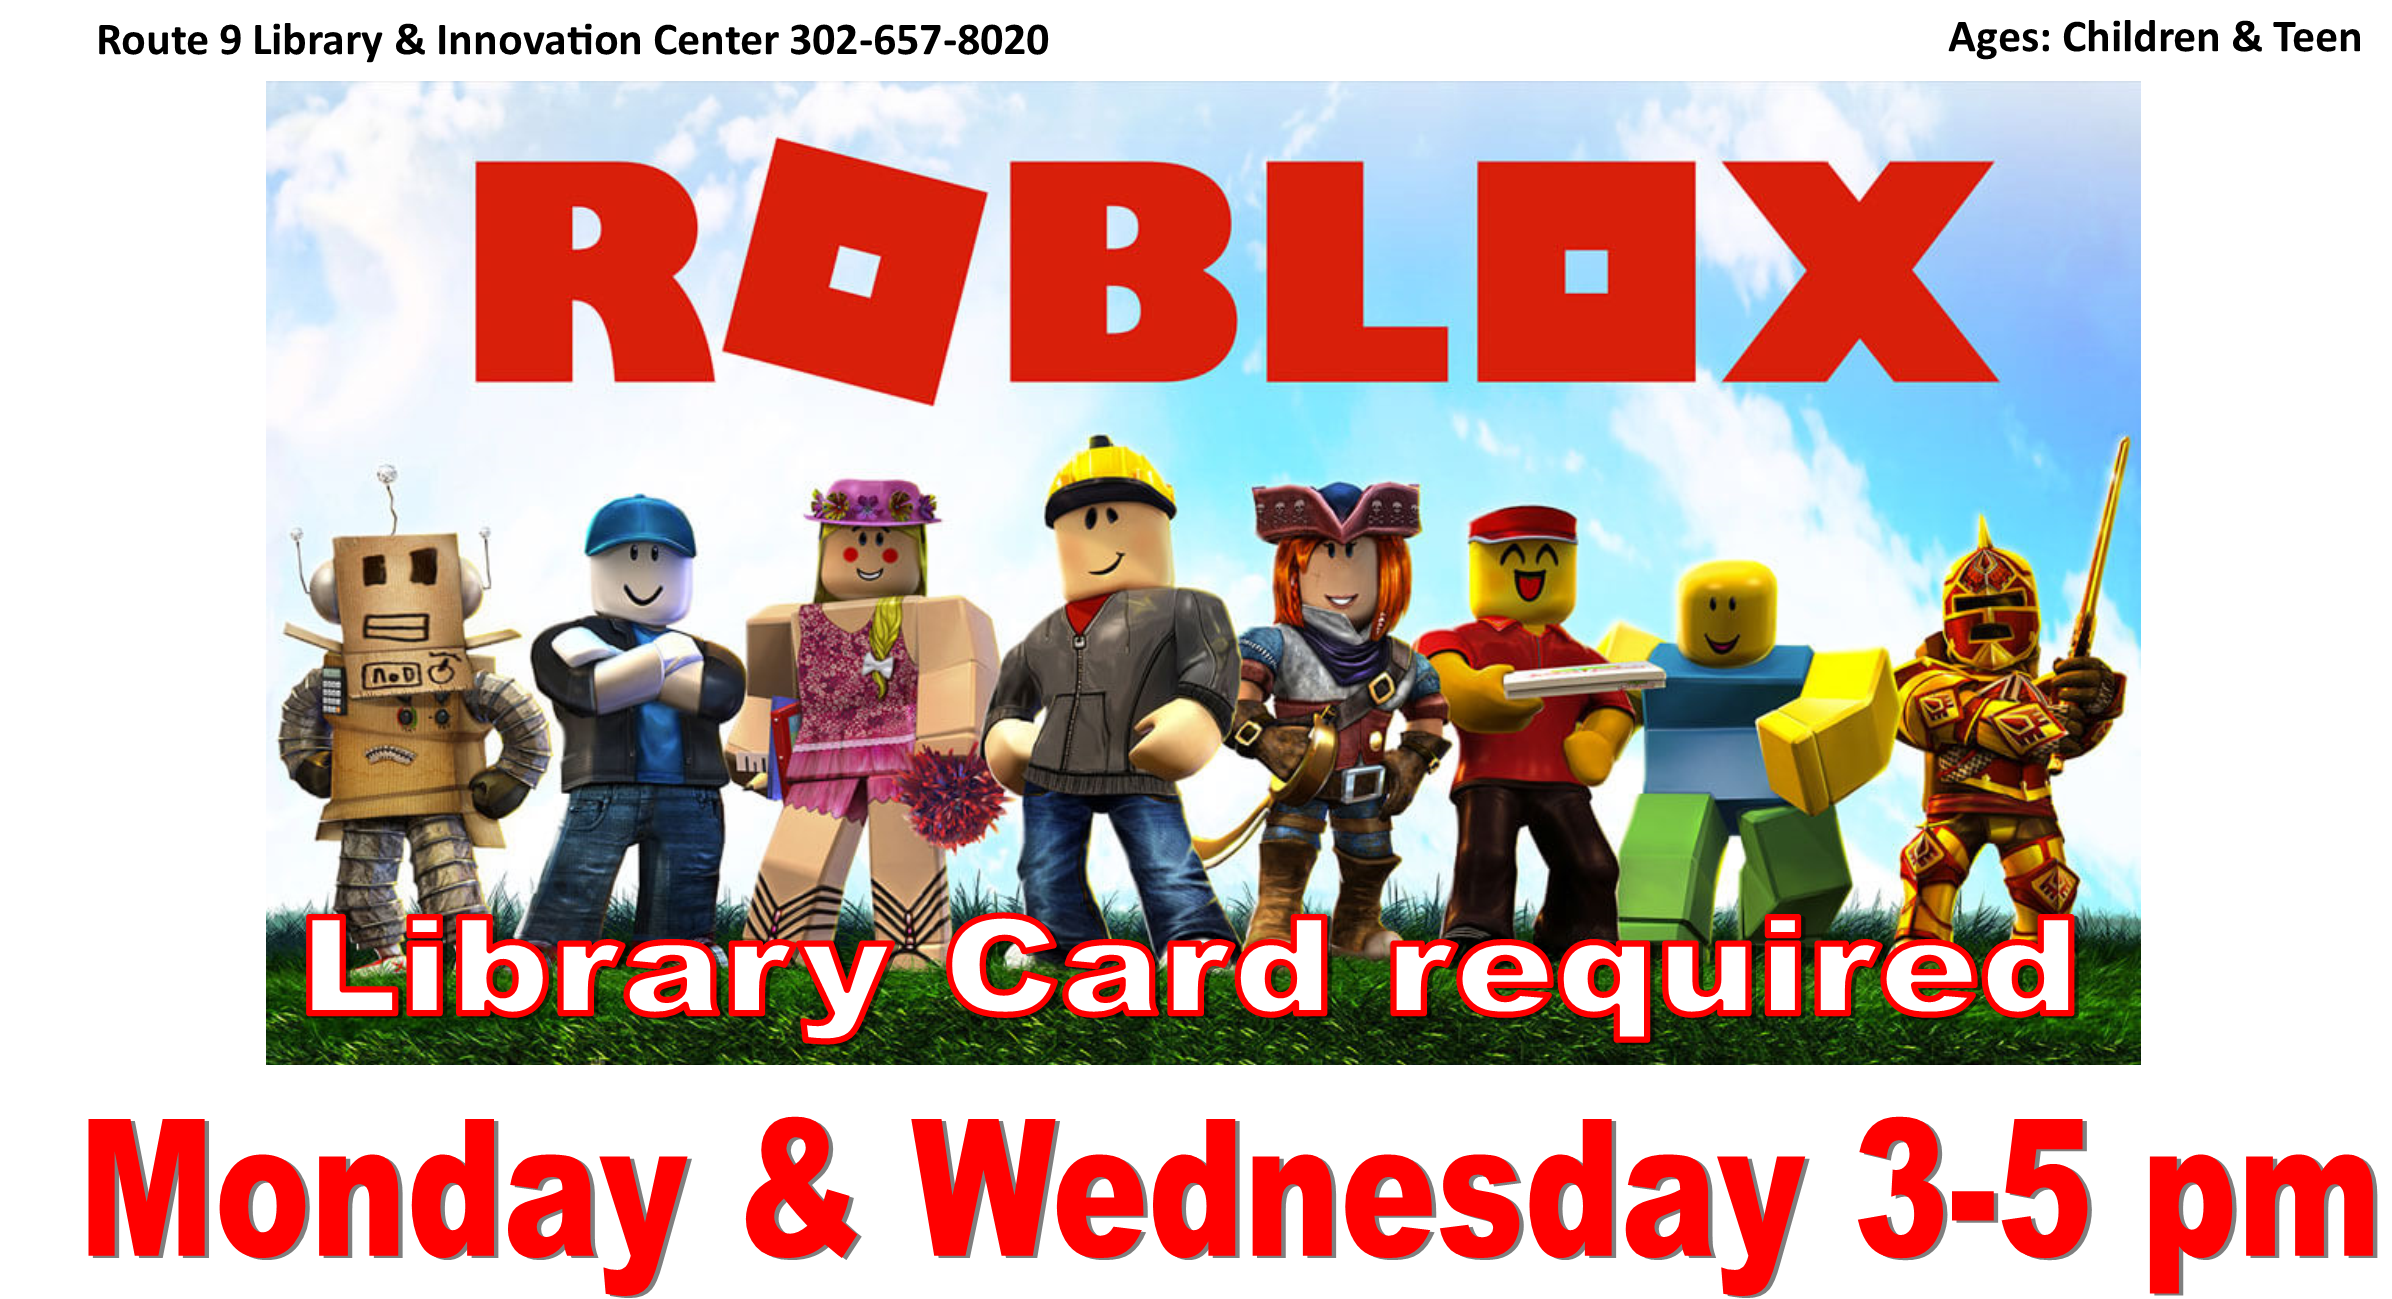 ROBLOX Group Play